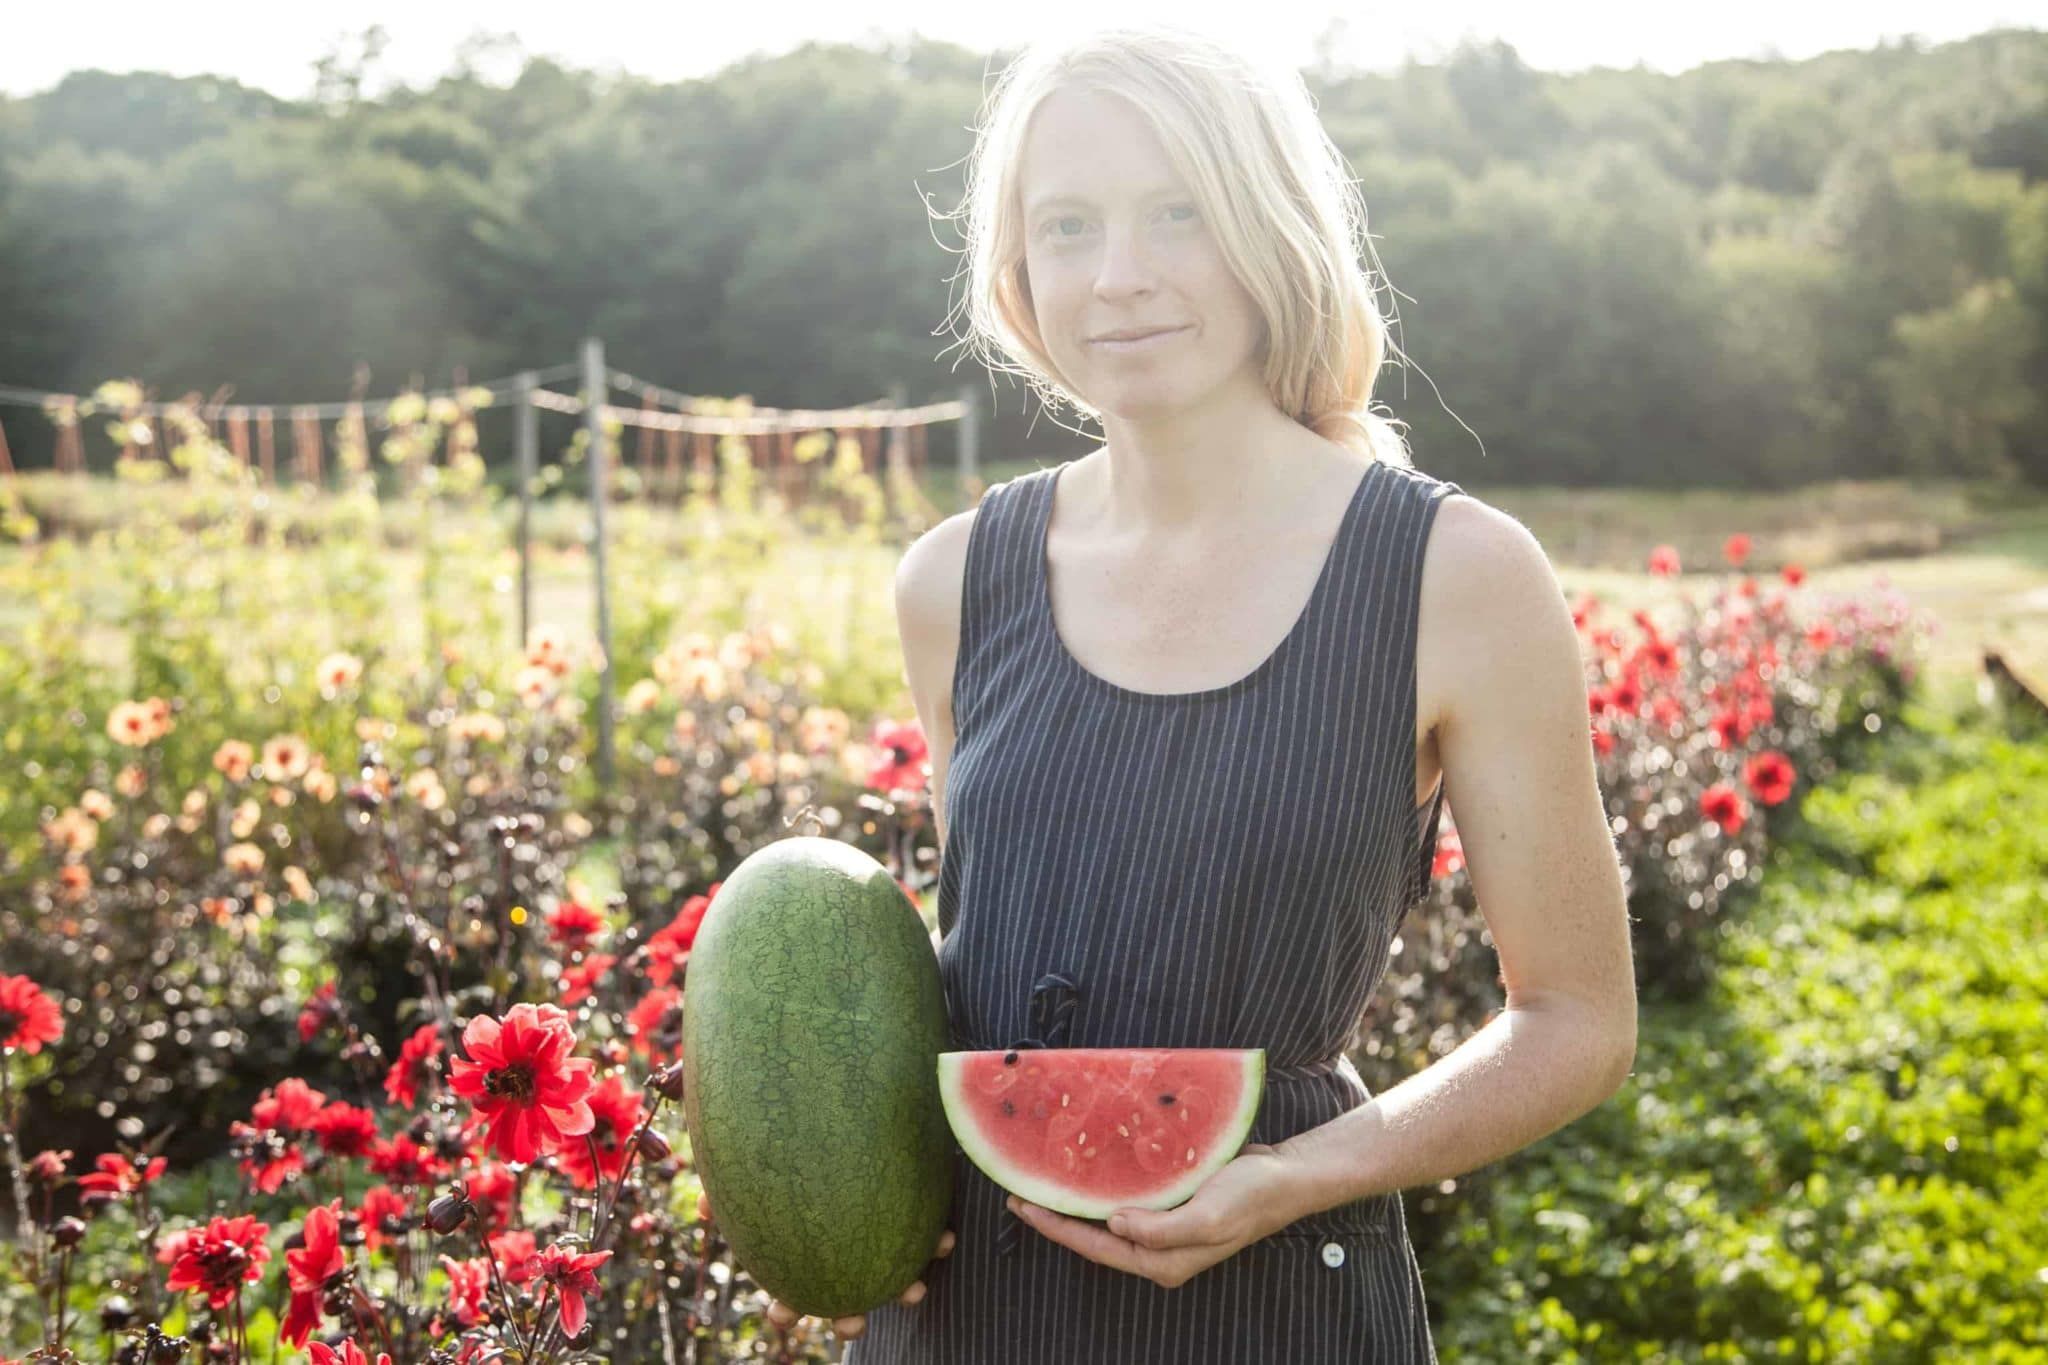 person standing in a field holding a watermelon